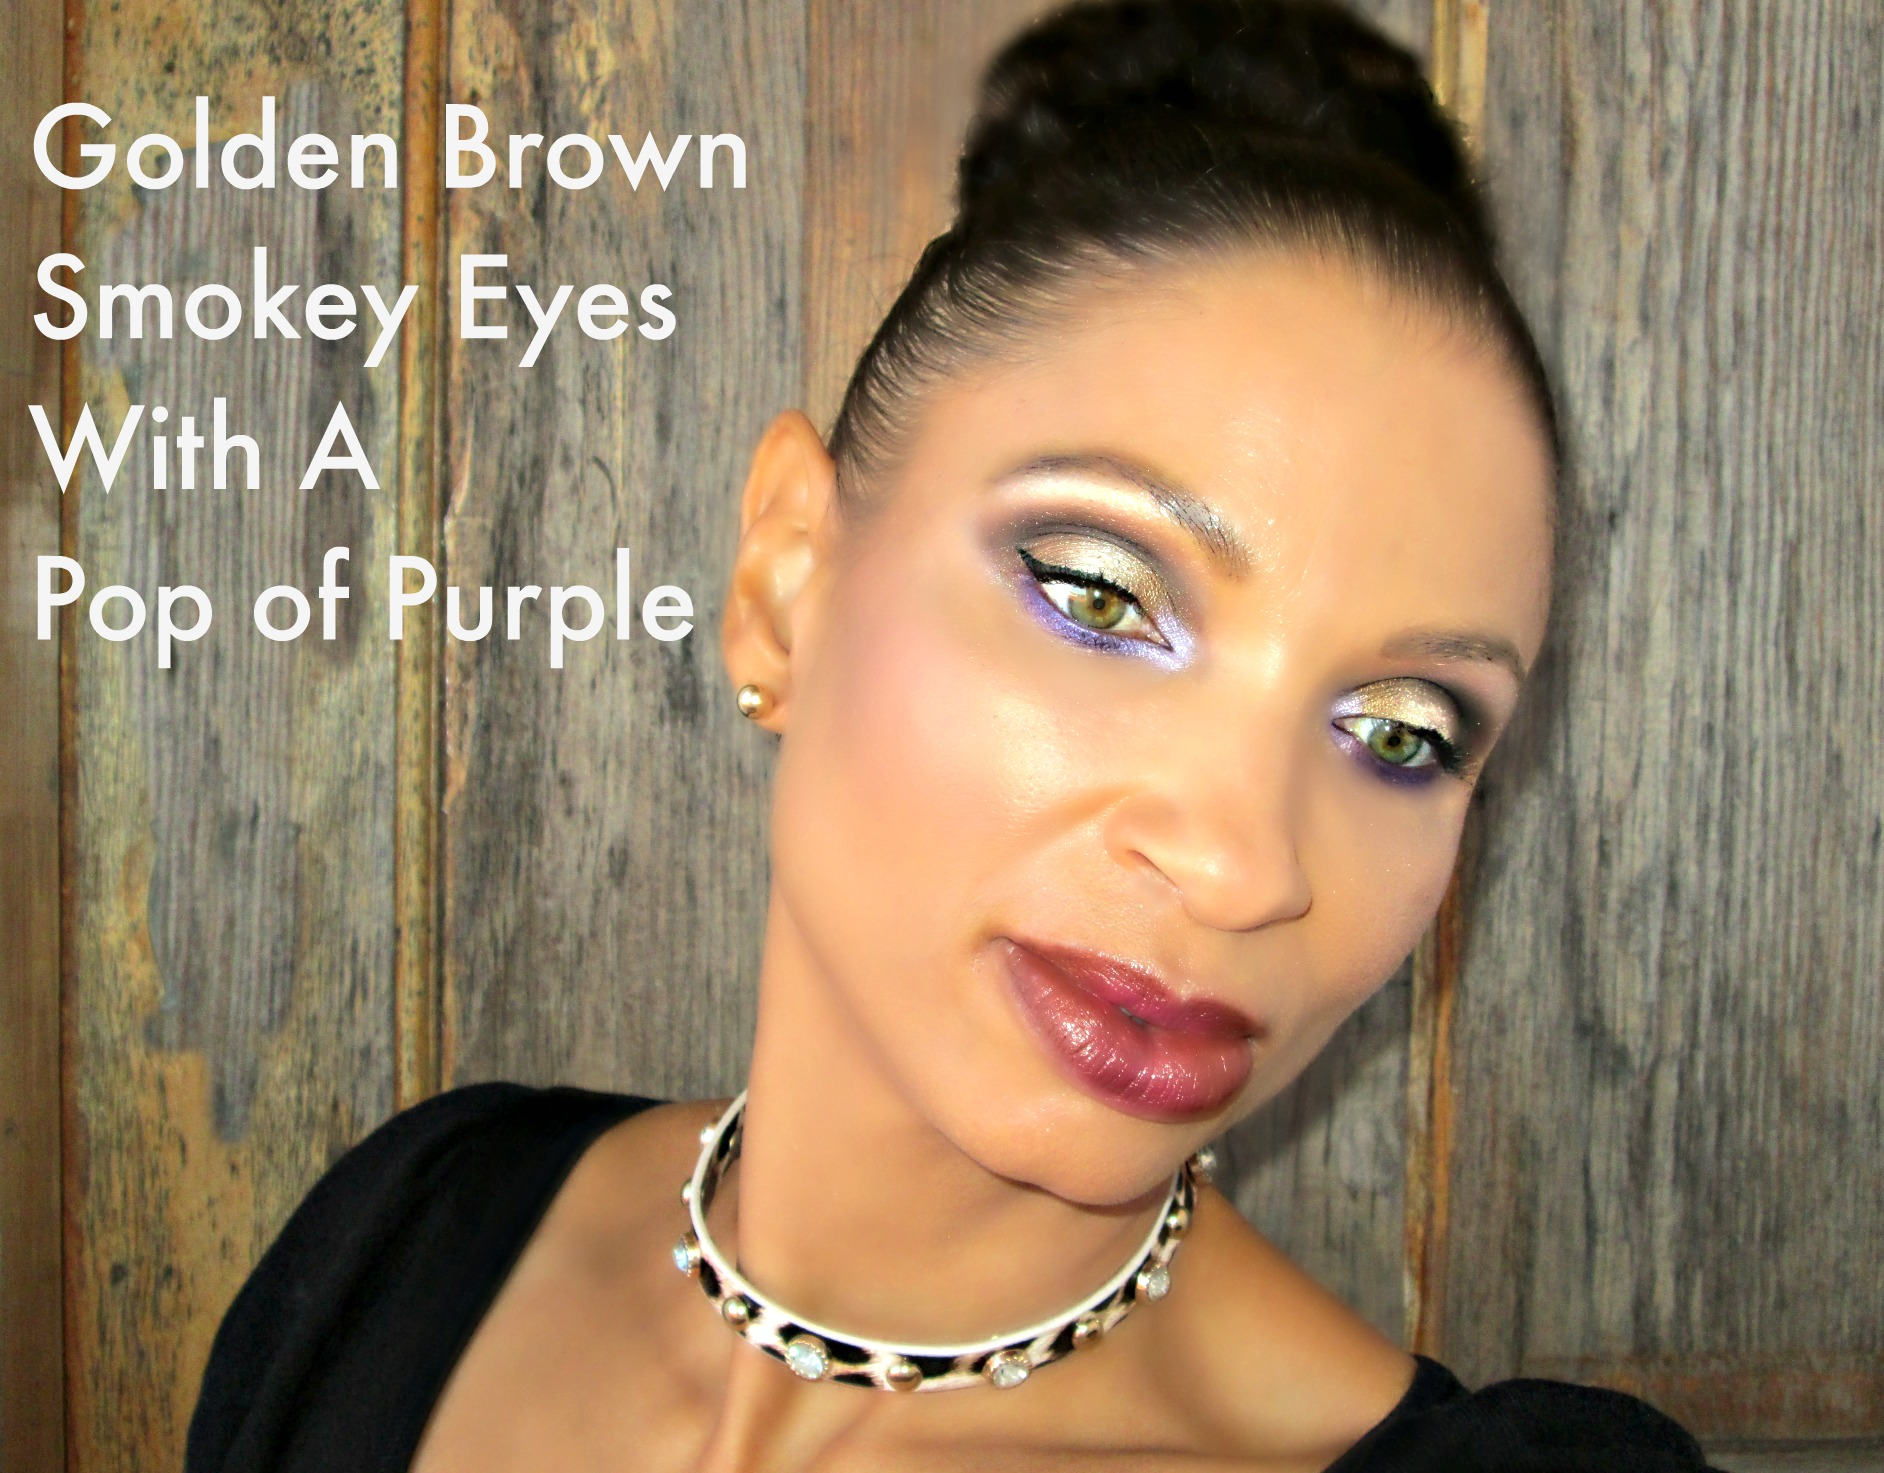 Golden Smokey Eyes With a Pop of Purple